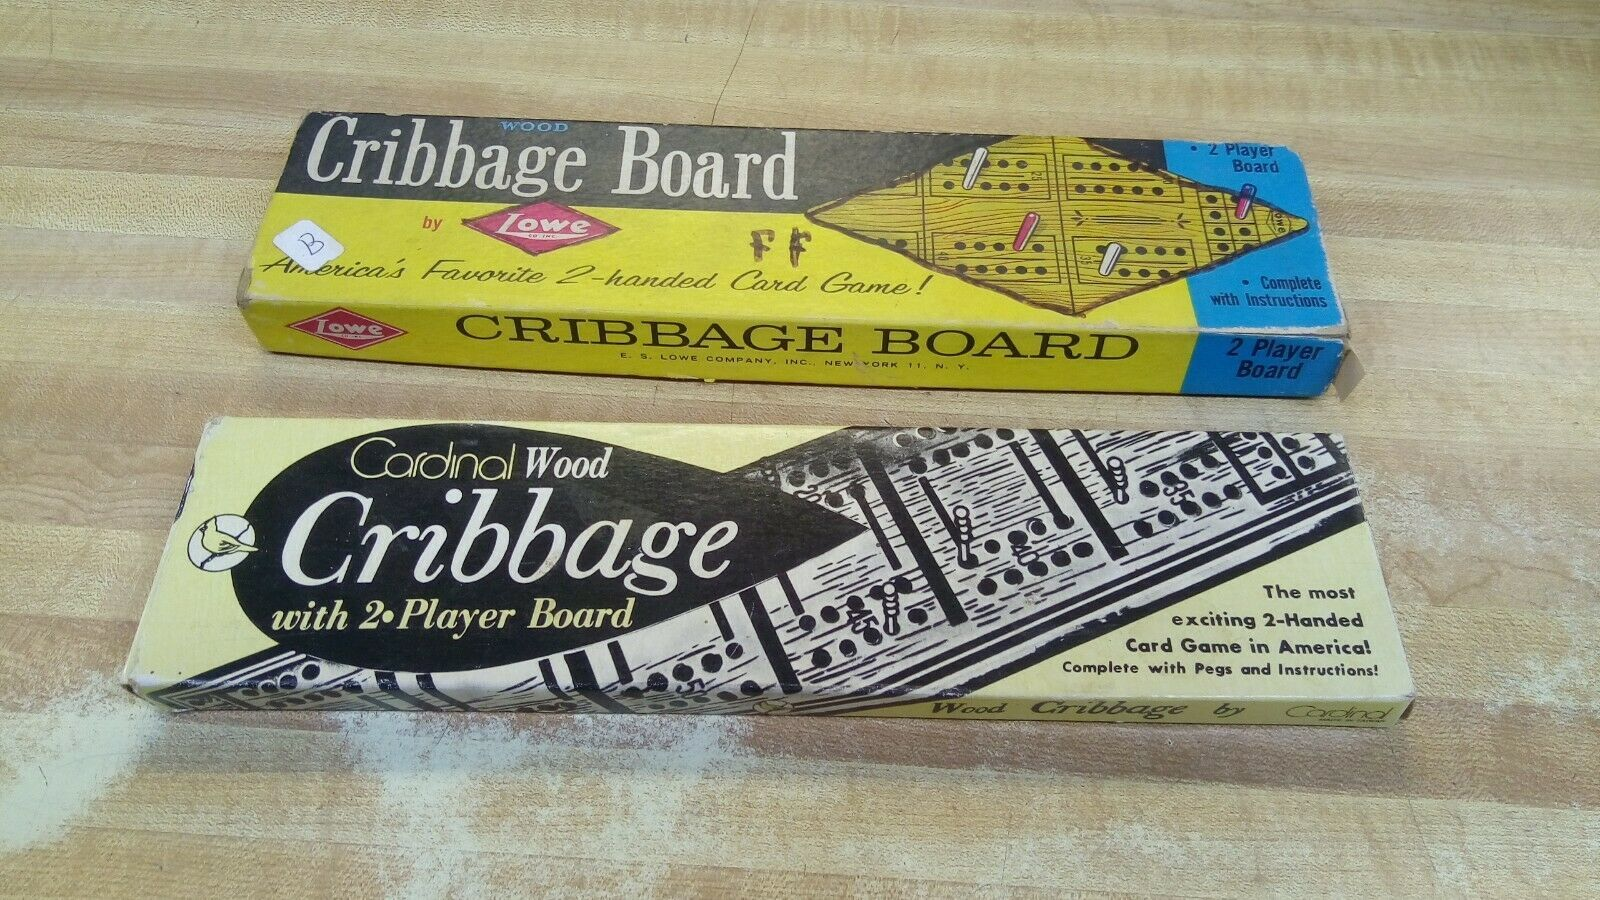 Primary image for  Lot of Two Cribbage Boards Vintage Wood Box Lowe Cardinal